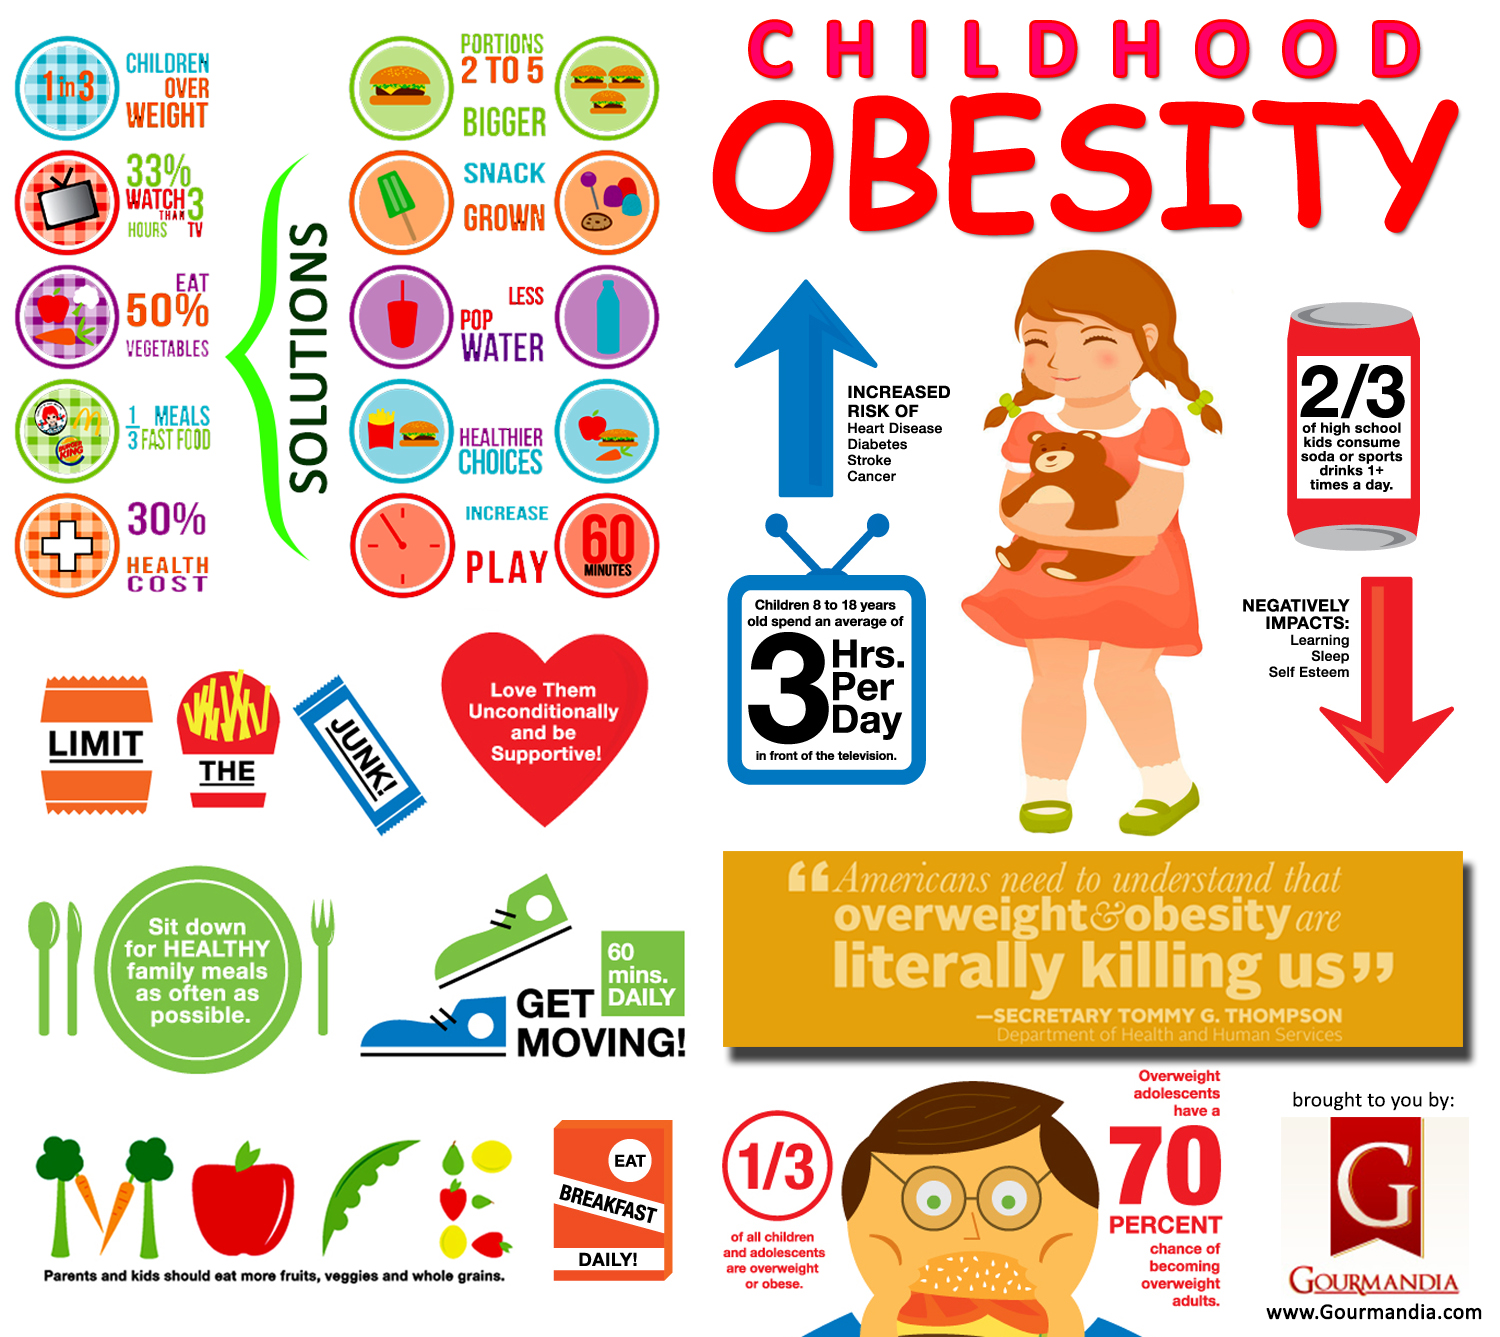 childhood obesitiy Childhood obesity is a national epidemic nearly 1 in 3 children (ages 2-19) in the united states is overweight or obese, putting them at risk for serious health problems.